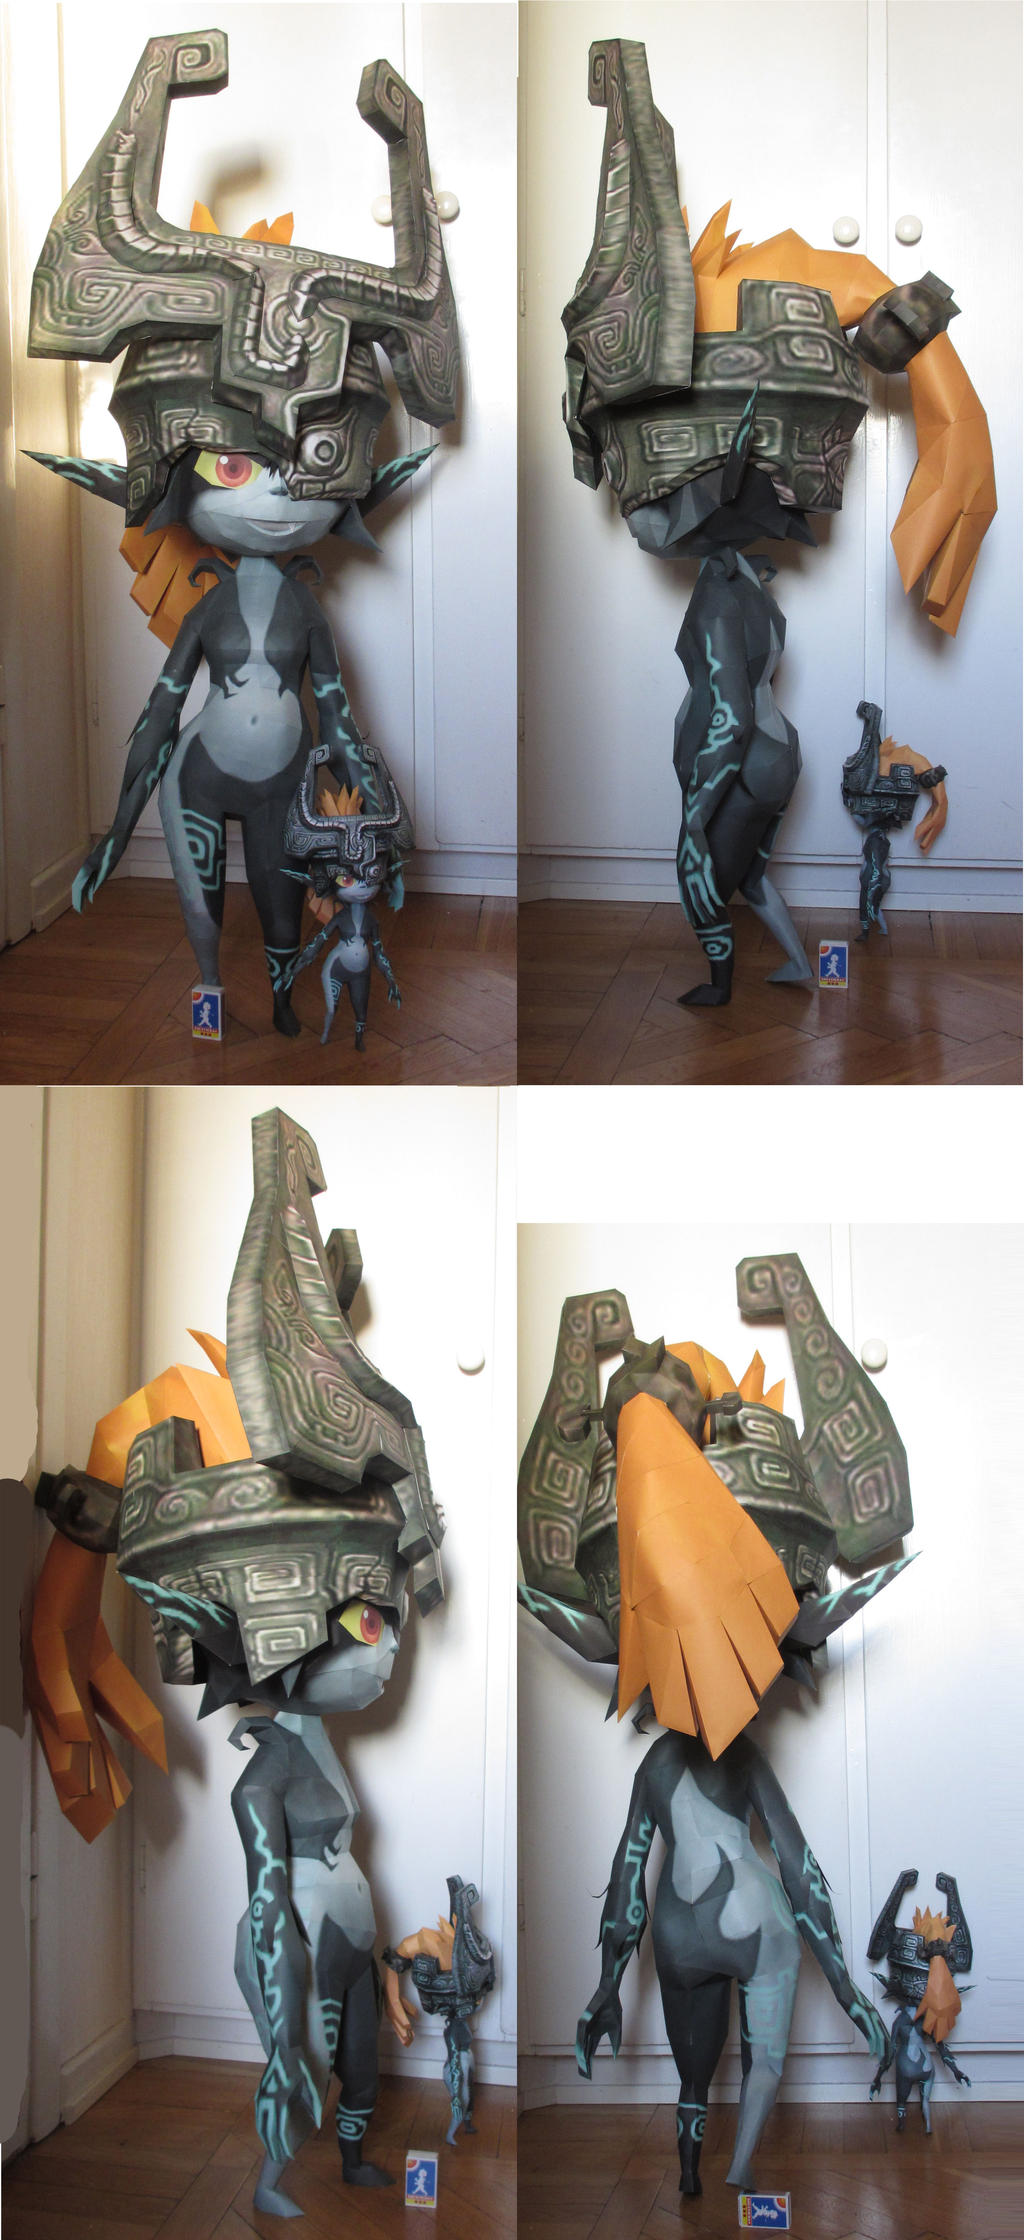 Life size Midna with miniMidna papercraft by minidelirium